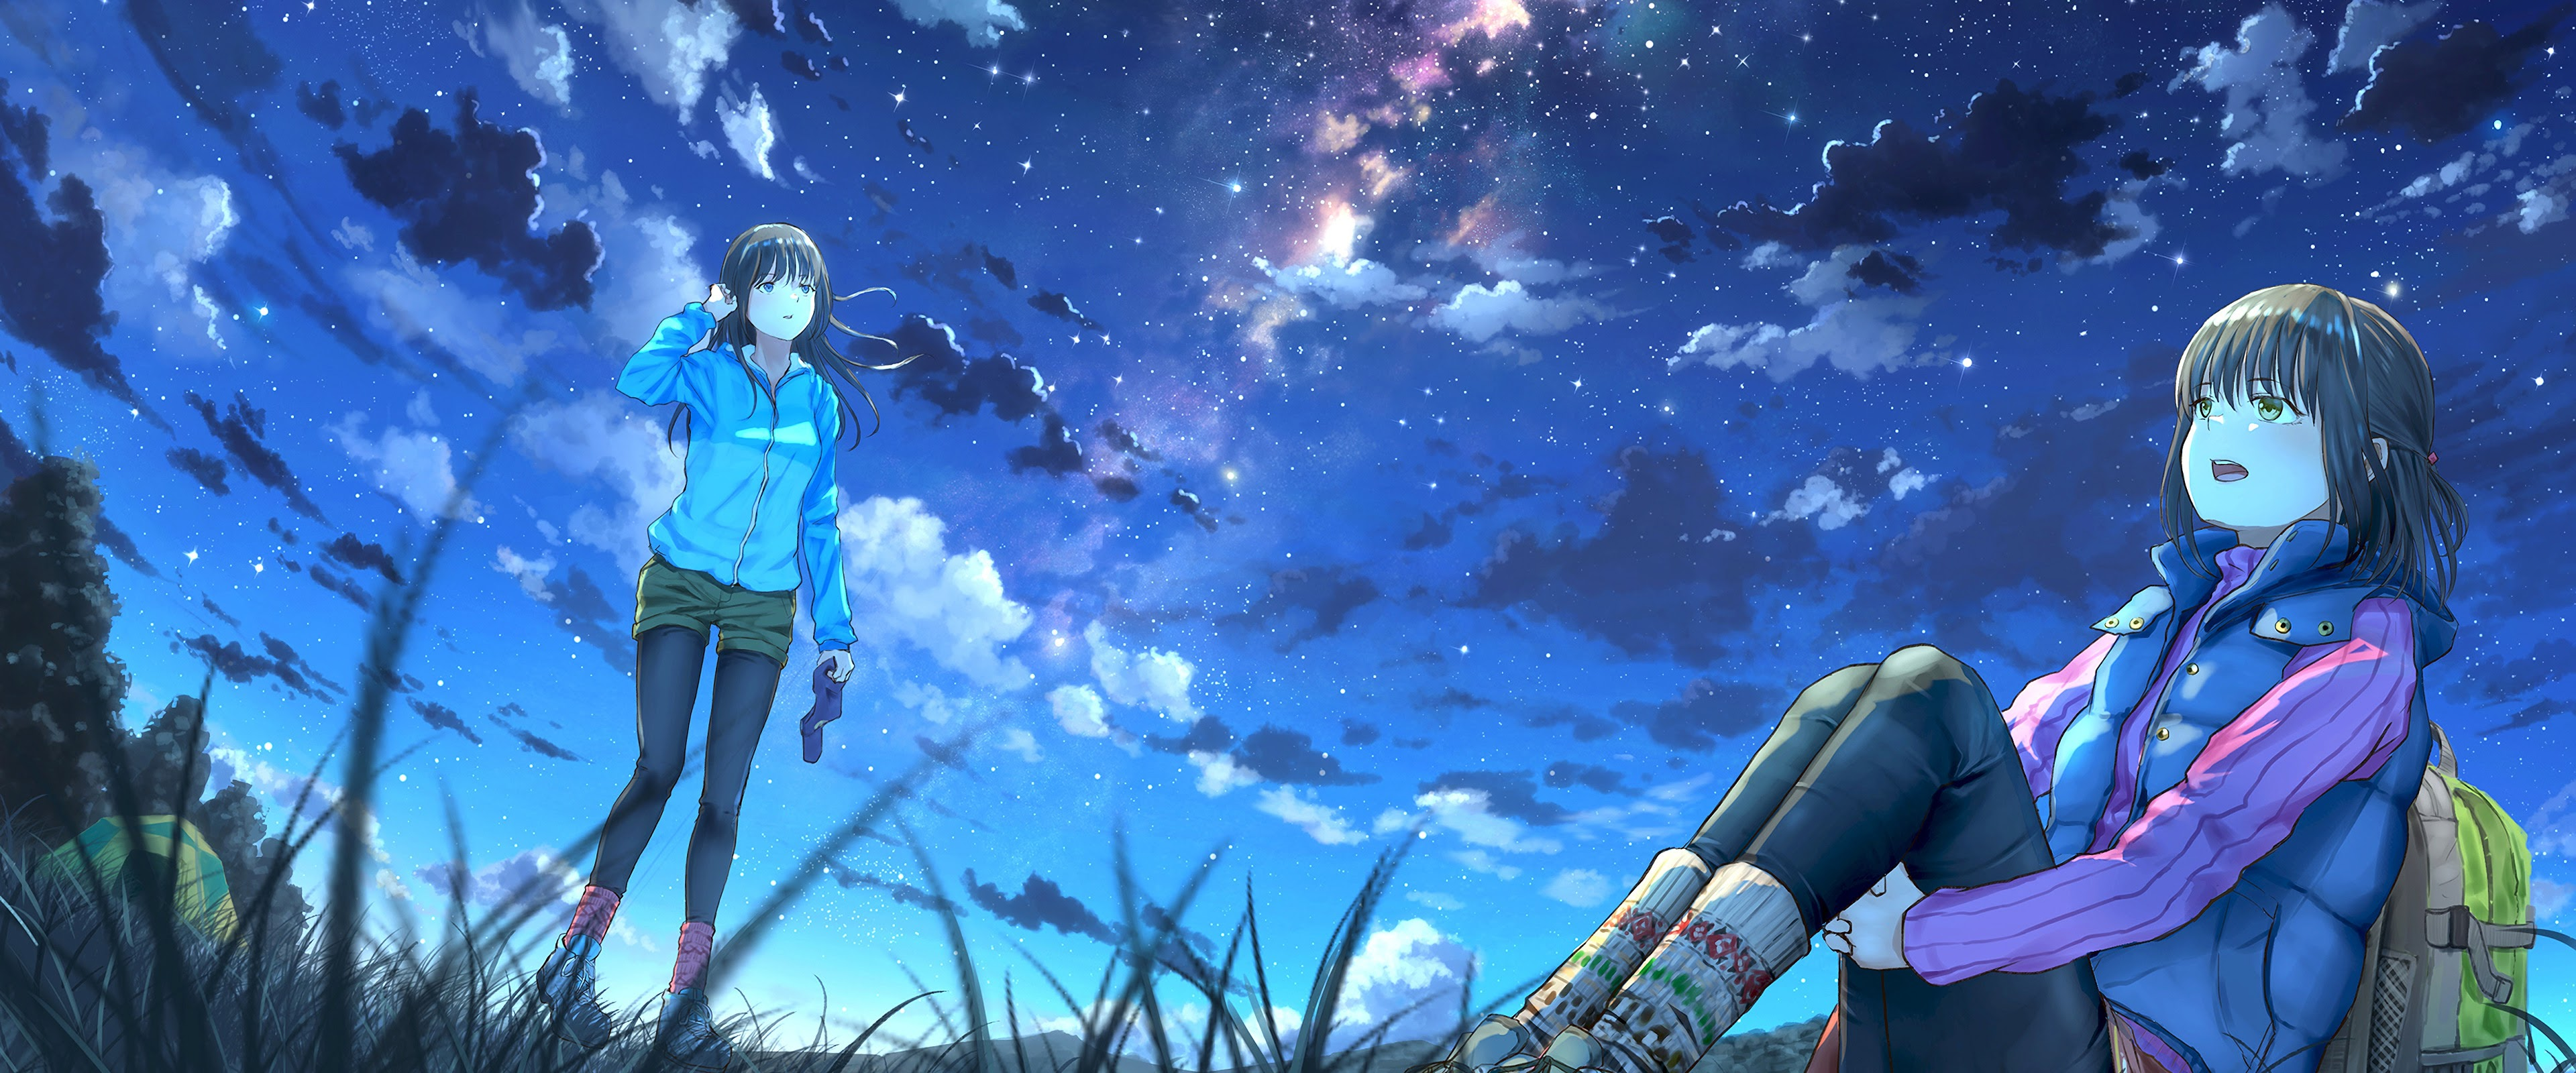 Anime Girls Night Sky Scenery Clouds Stars 4k Wallpaper 64